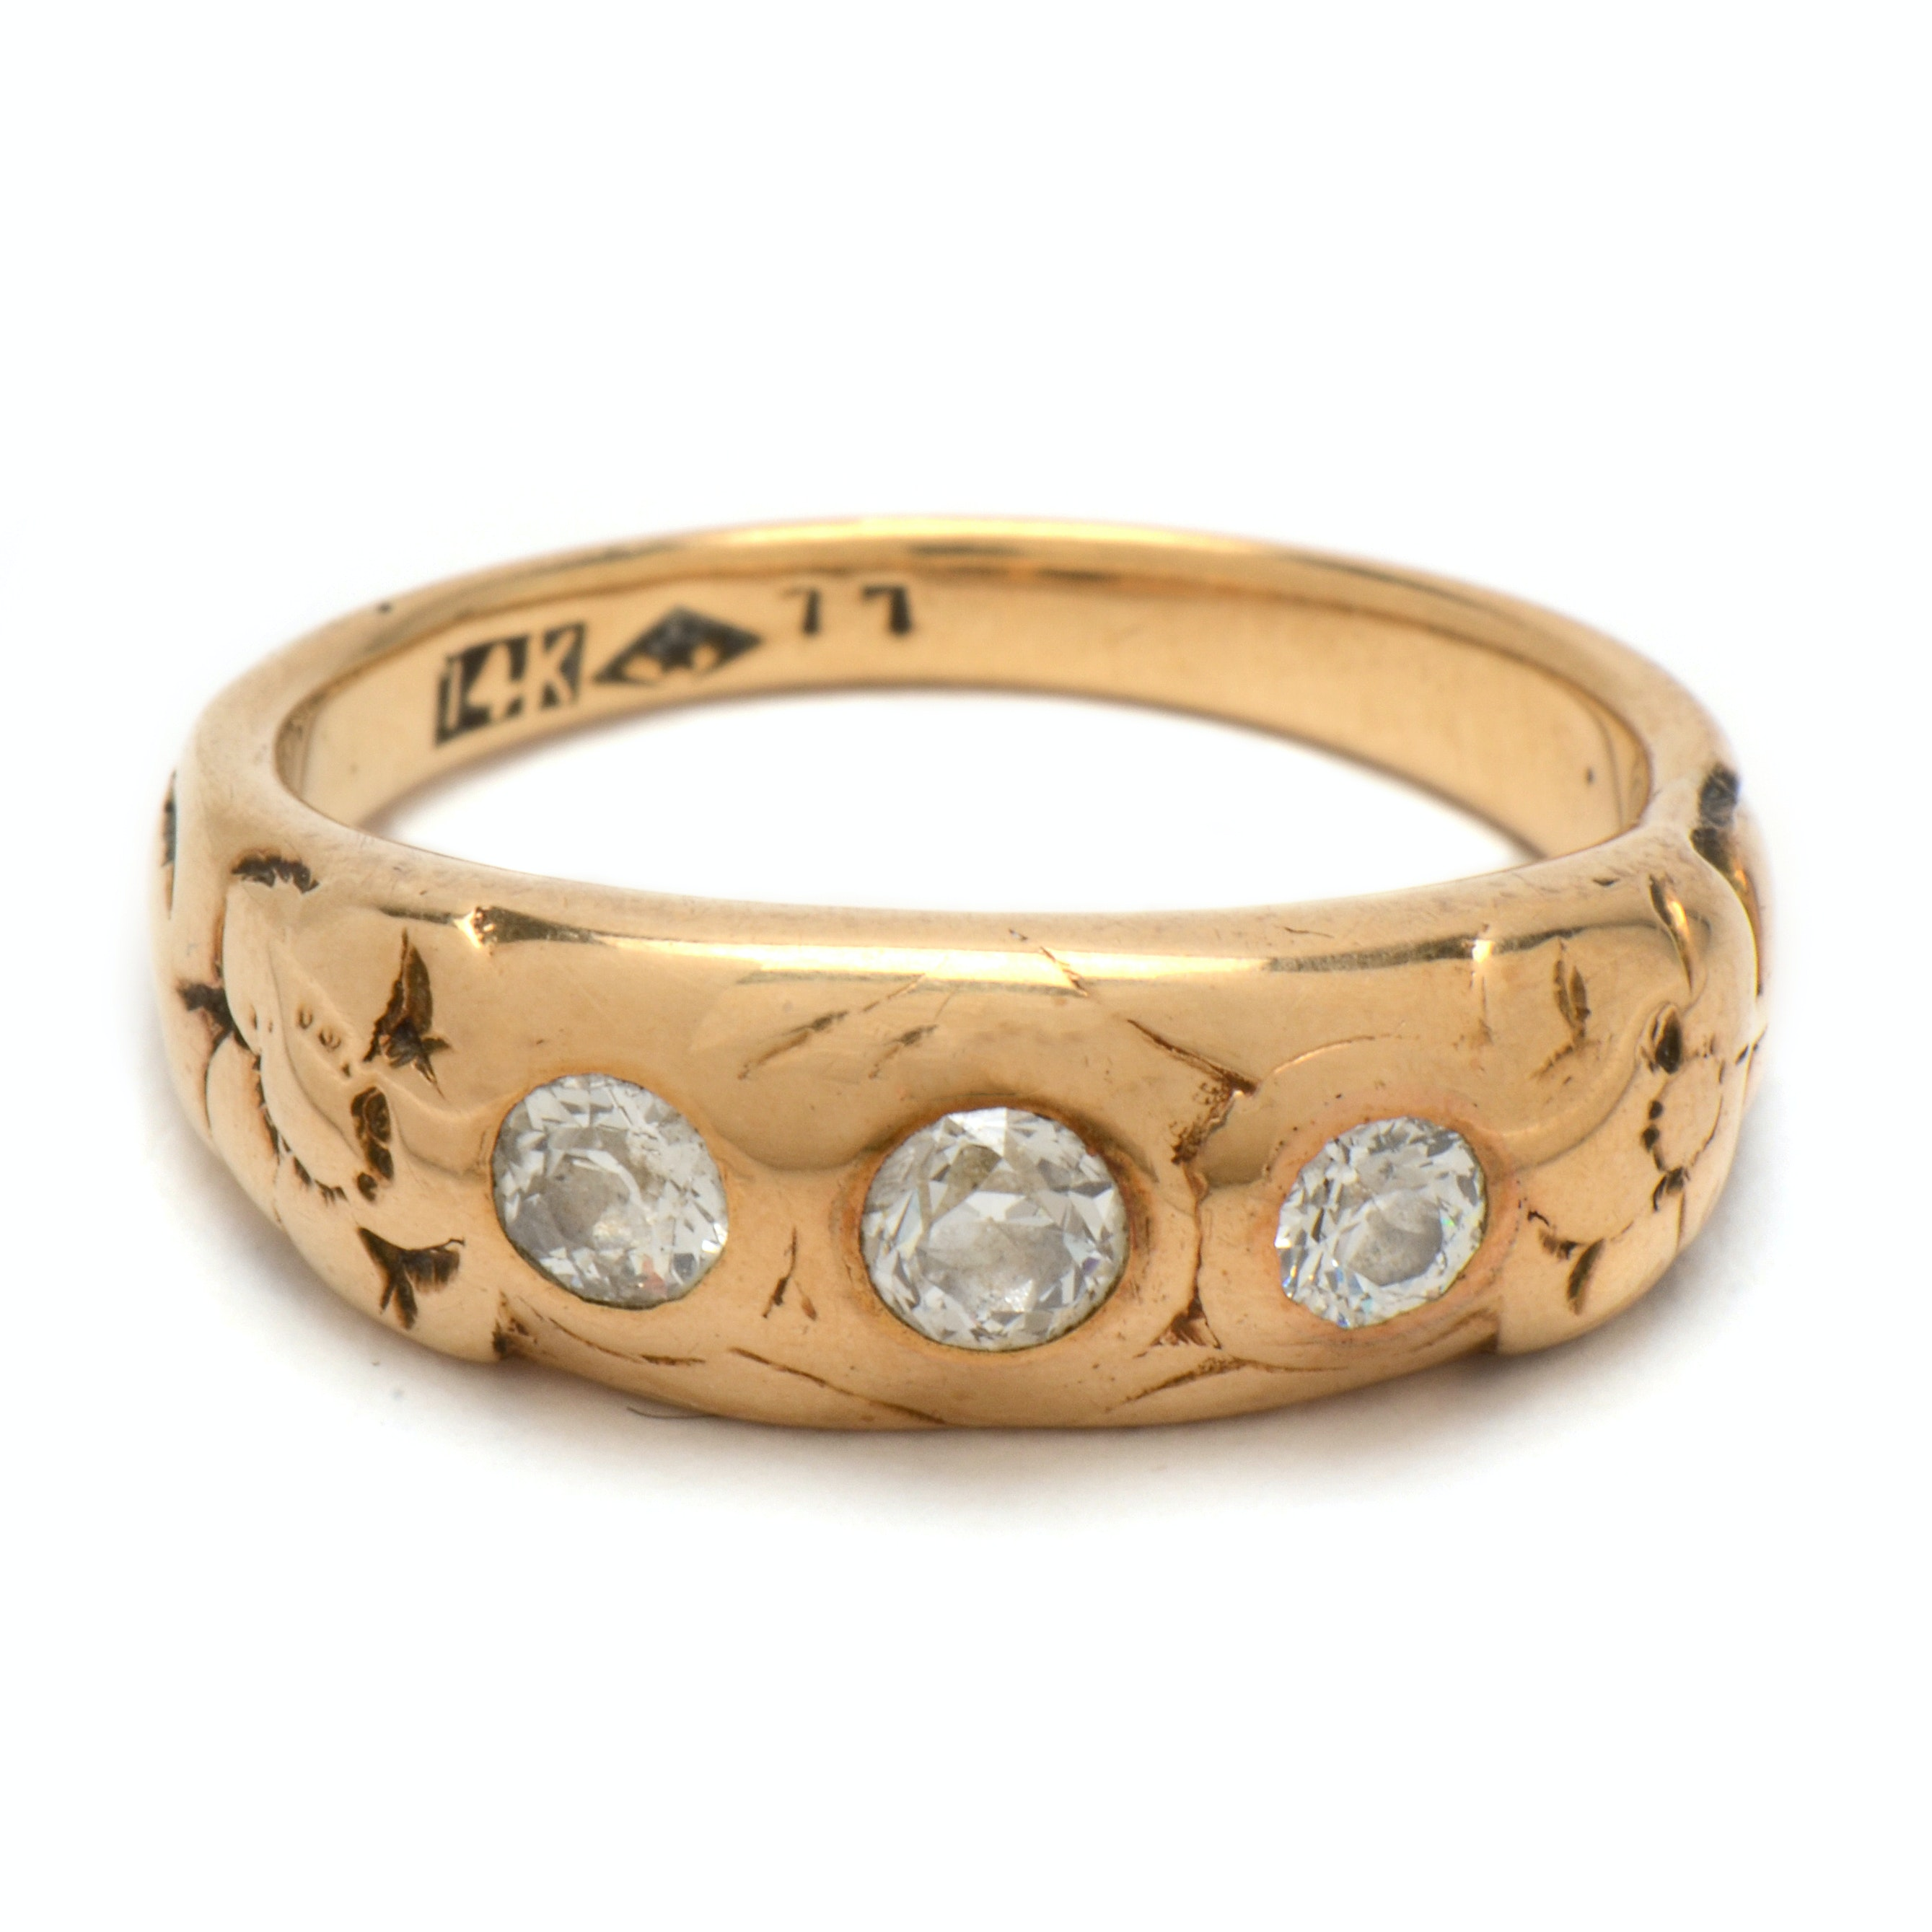 Early 20th Century 14K Yellow Gold Diamond Floral Ring